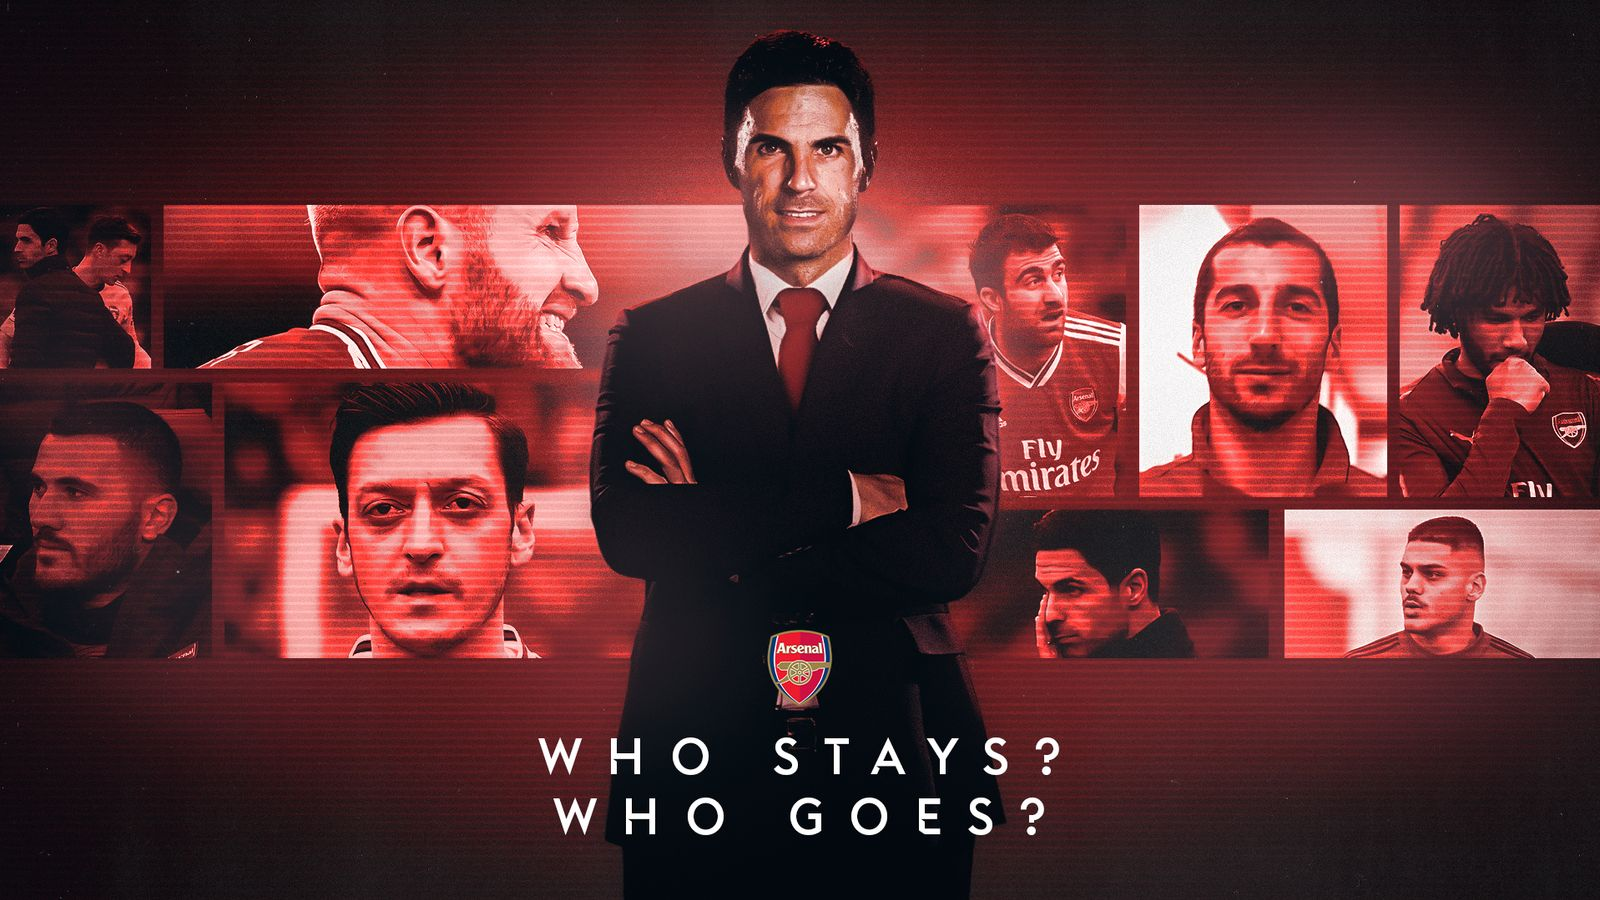 Arsenal's first-team squad assessed: Stay or go? thumbnail